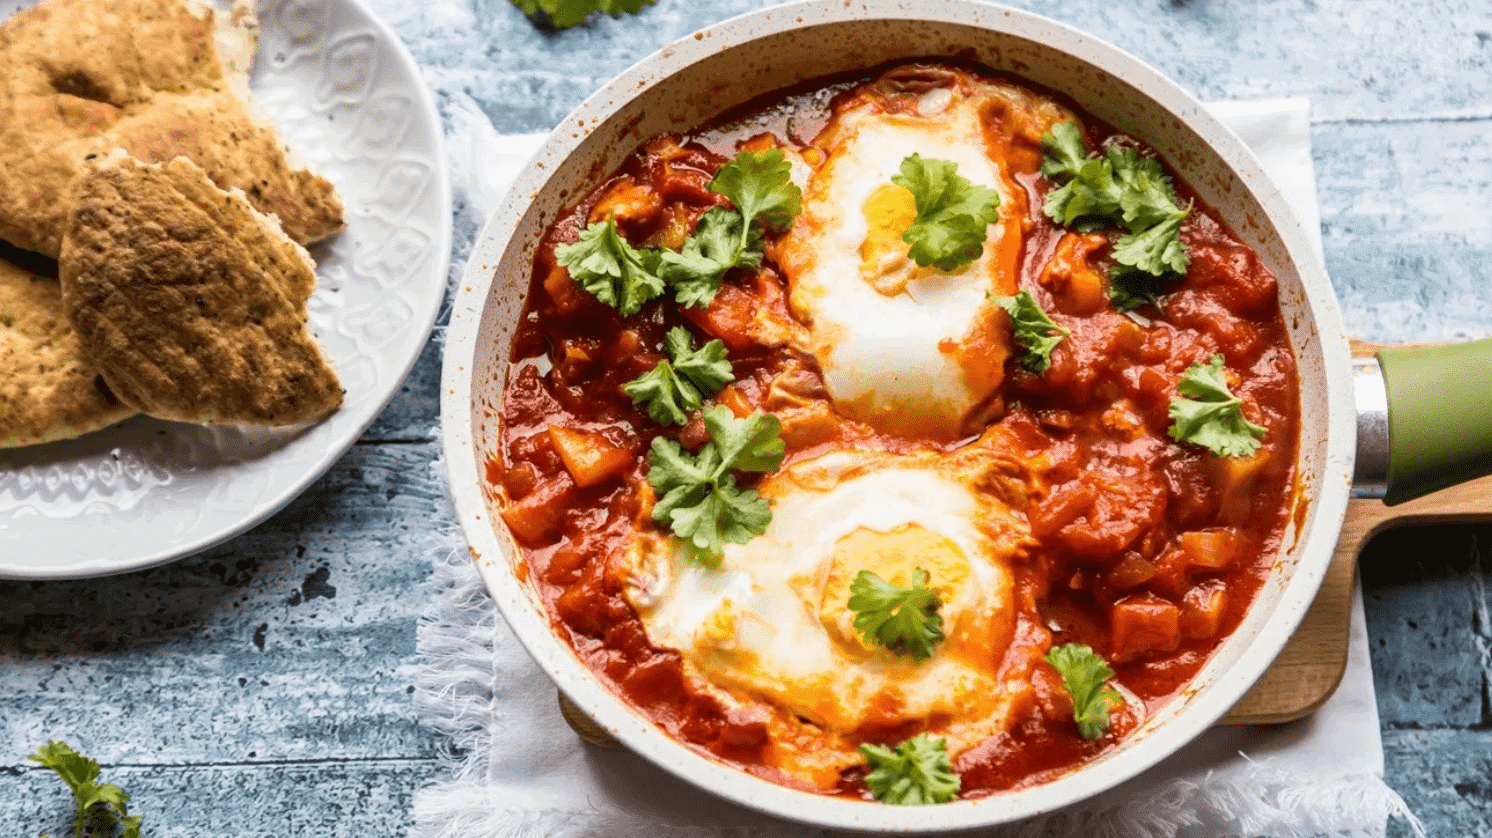 TOP 5 SHAKSHUKA IN TOWN